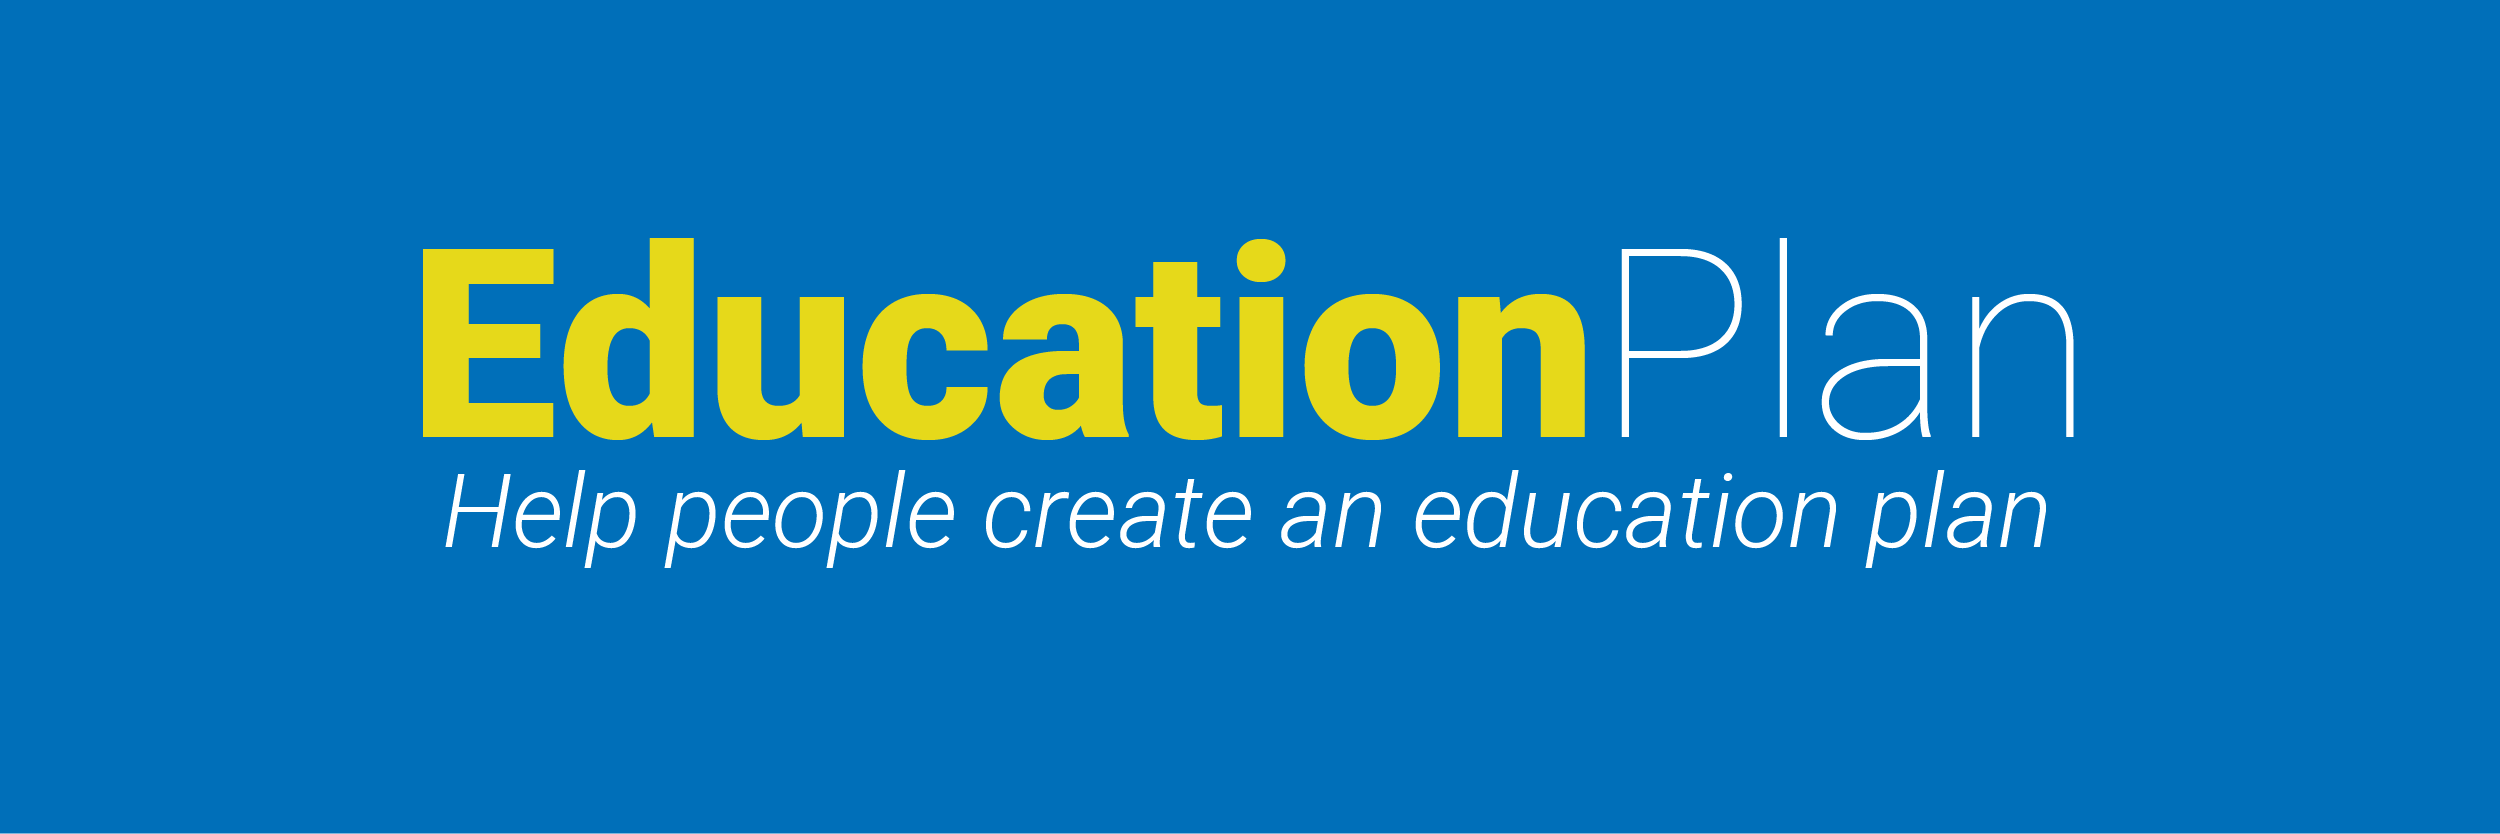 Education Plan-01